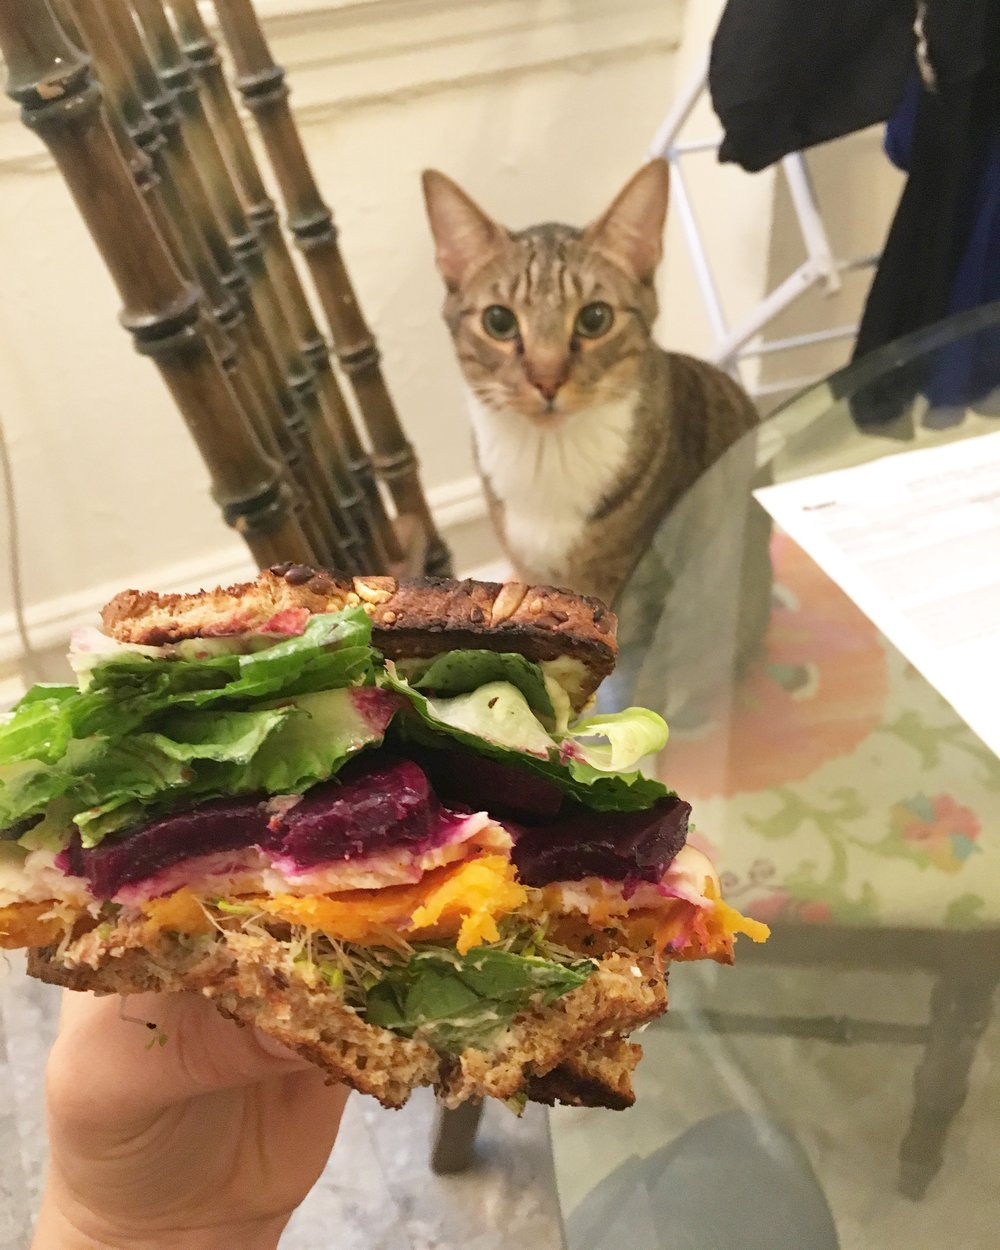 After this picture was taken, he jumped up and grabbed a beet out of the sandwich. #vegancat